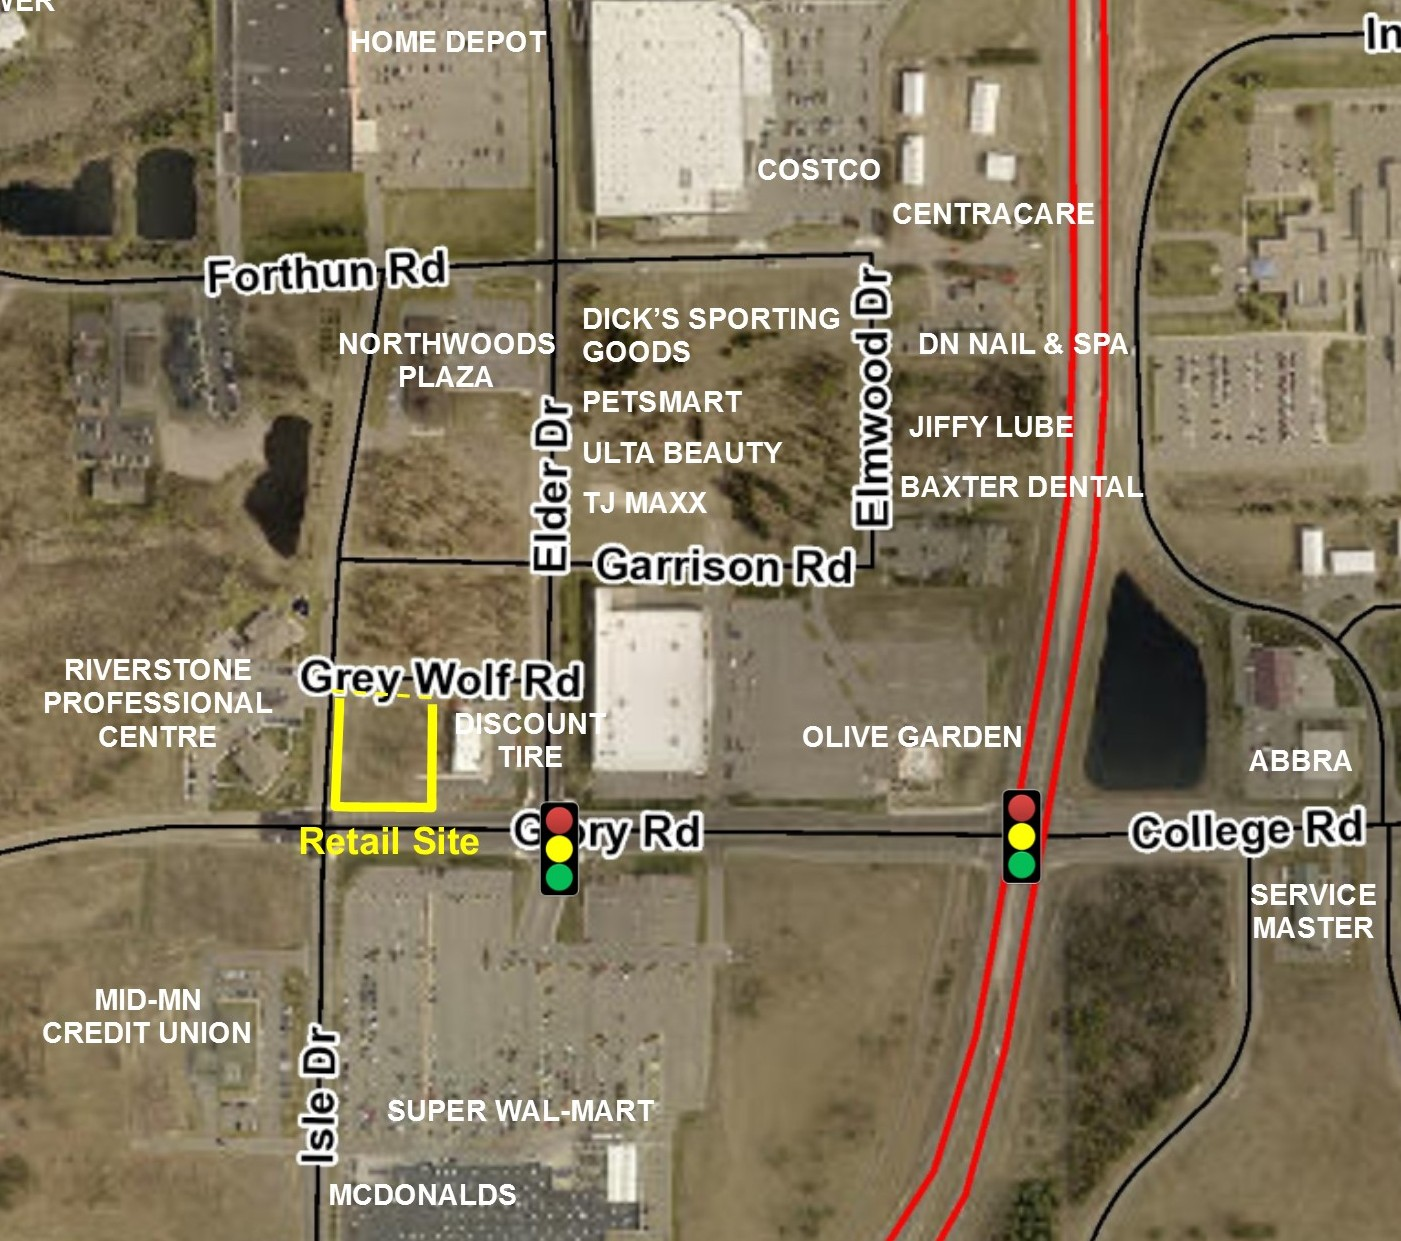 Retail Site Near Wal-Mart / Costco / Home Depot & More!